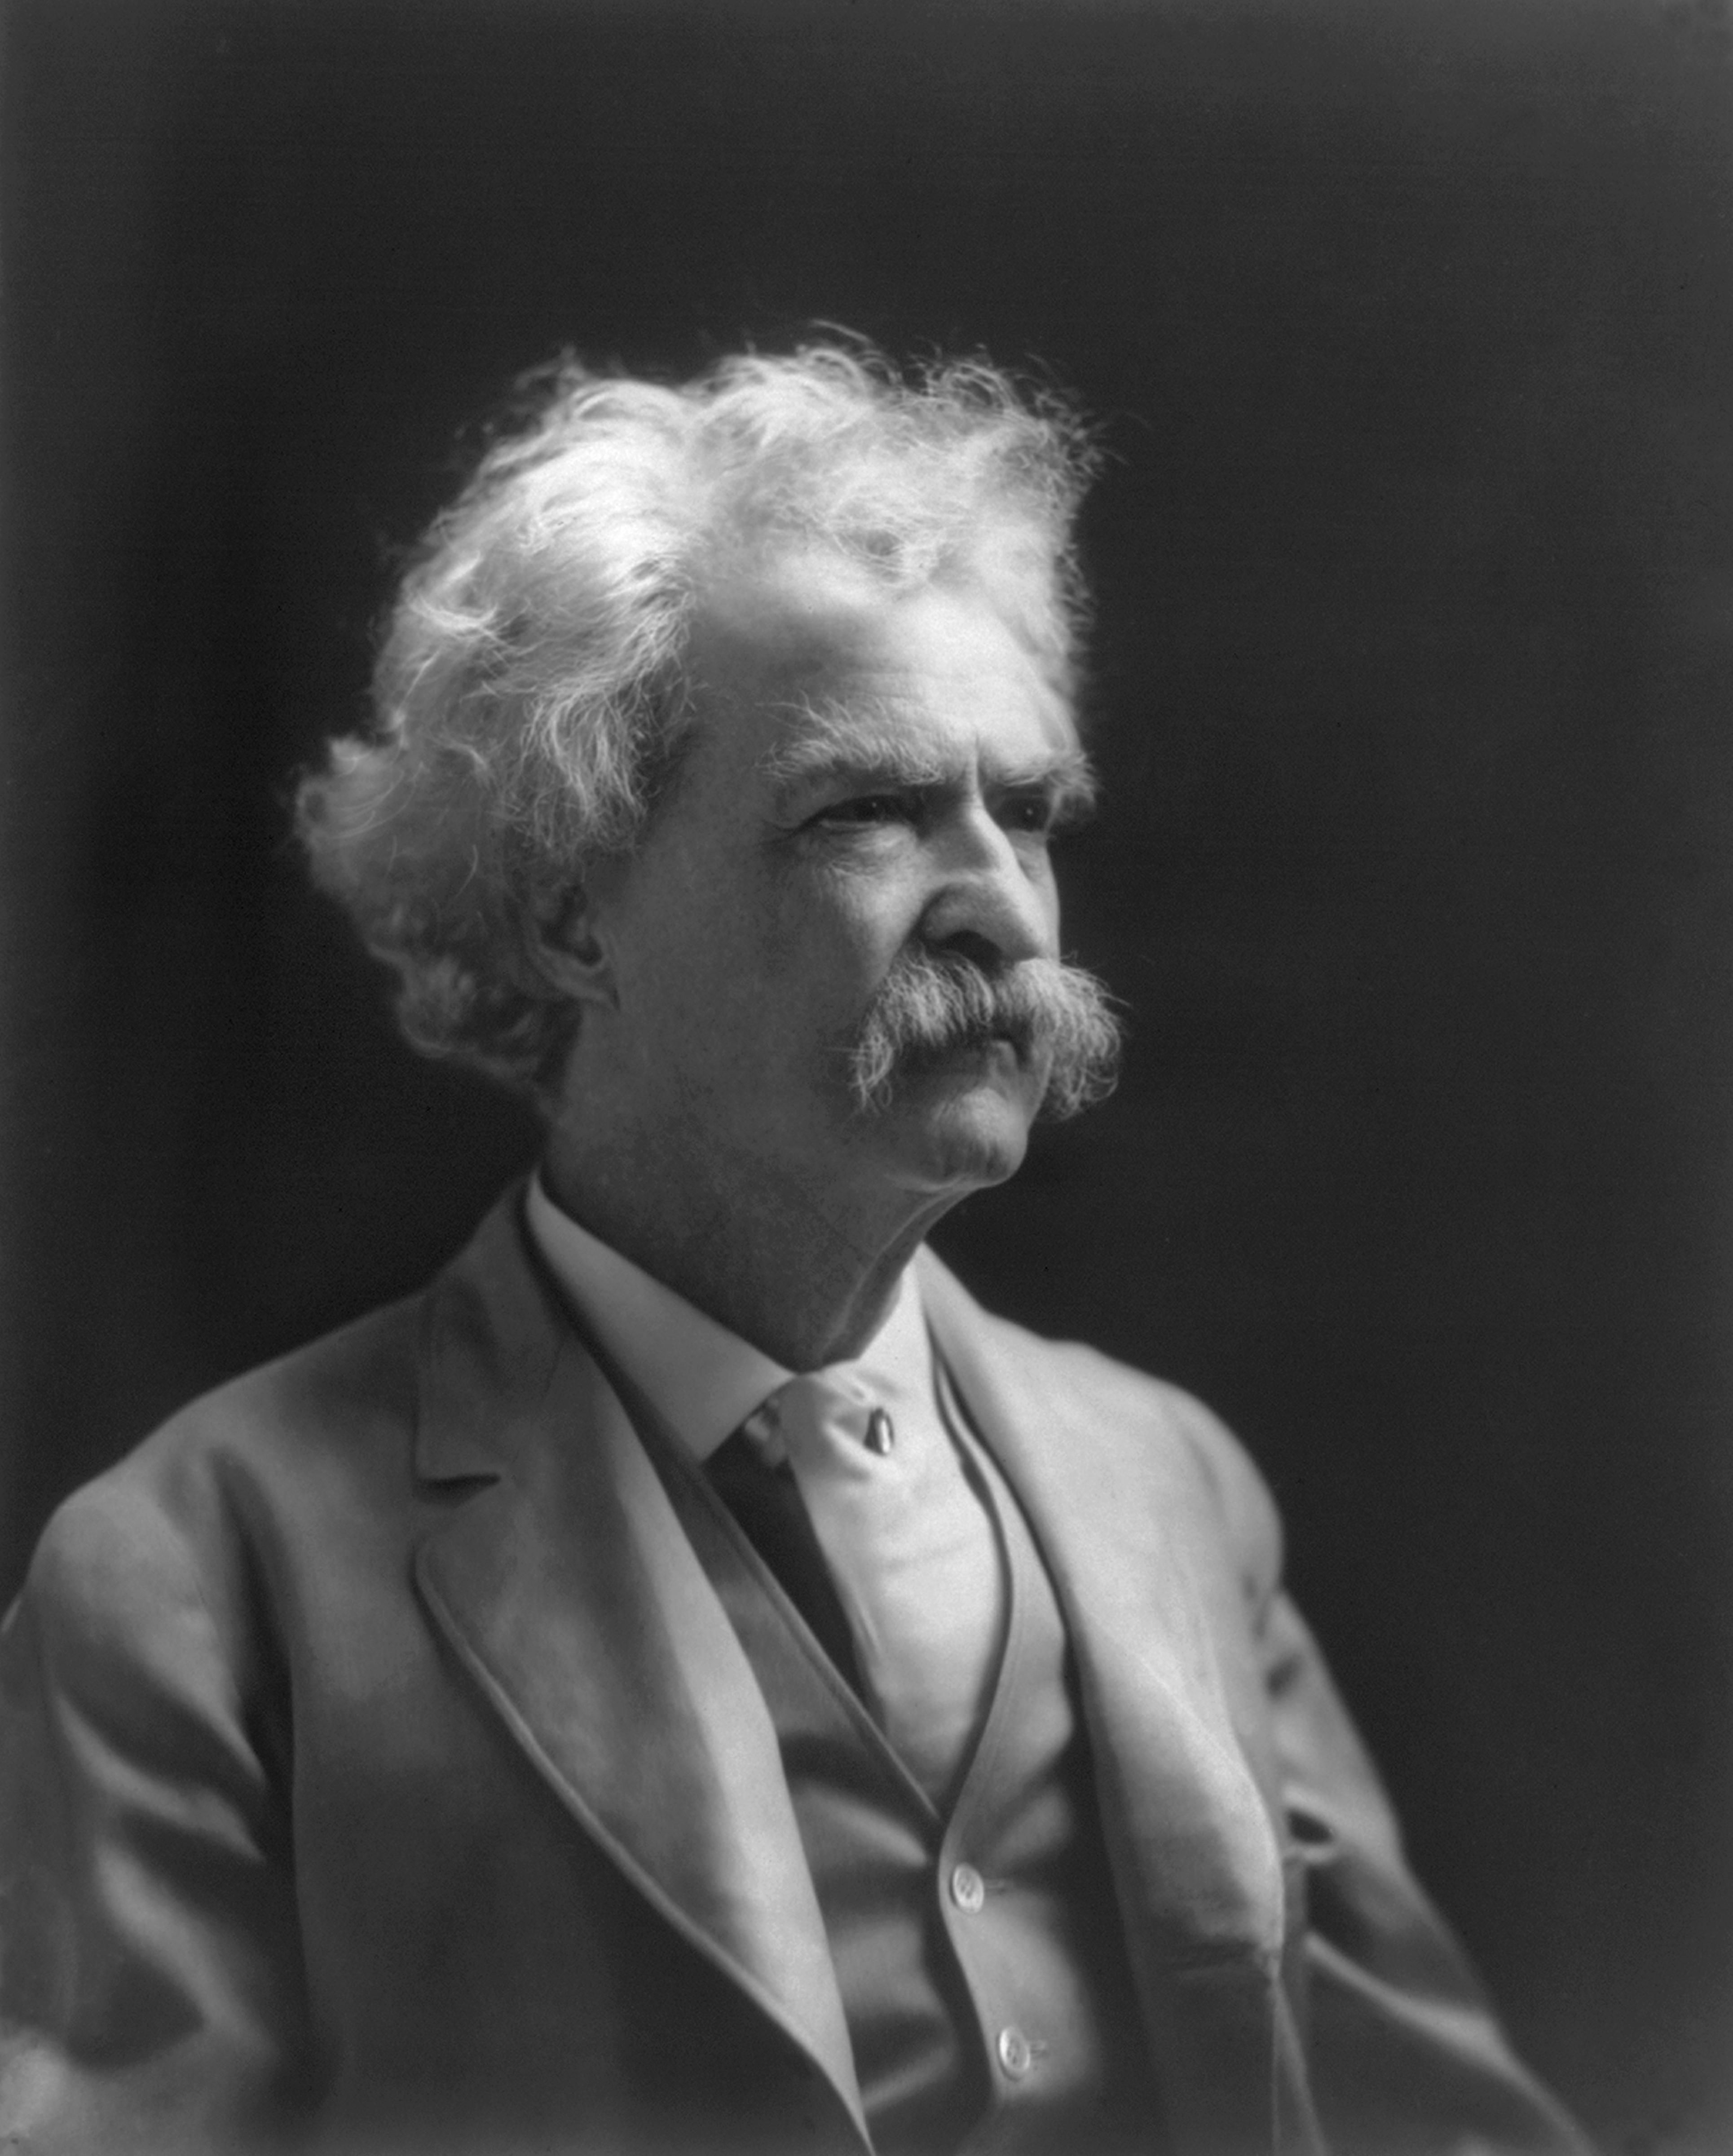 Quotes by Mark Twain on Religion